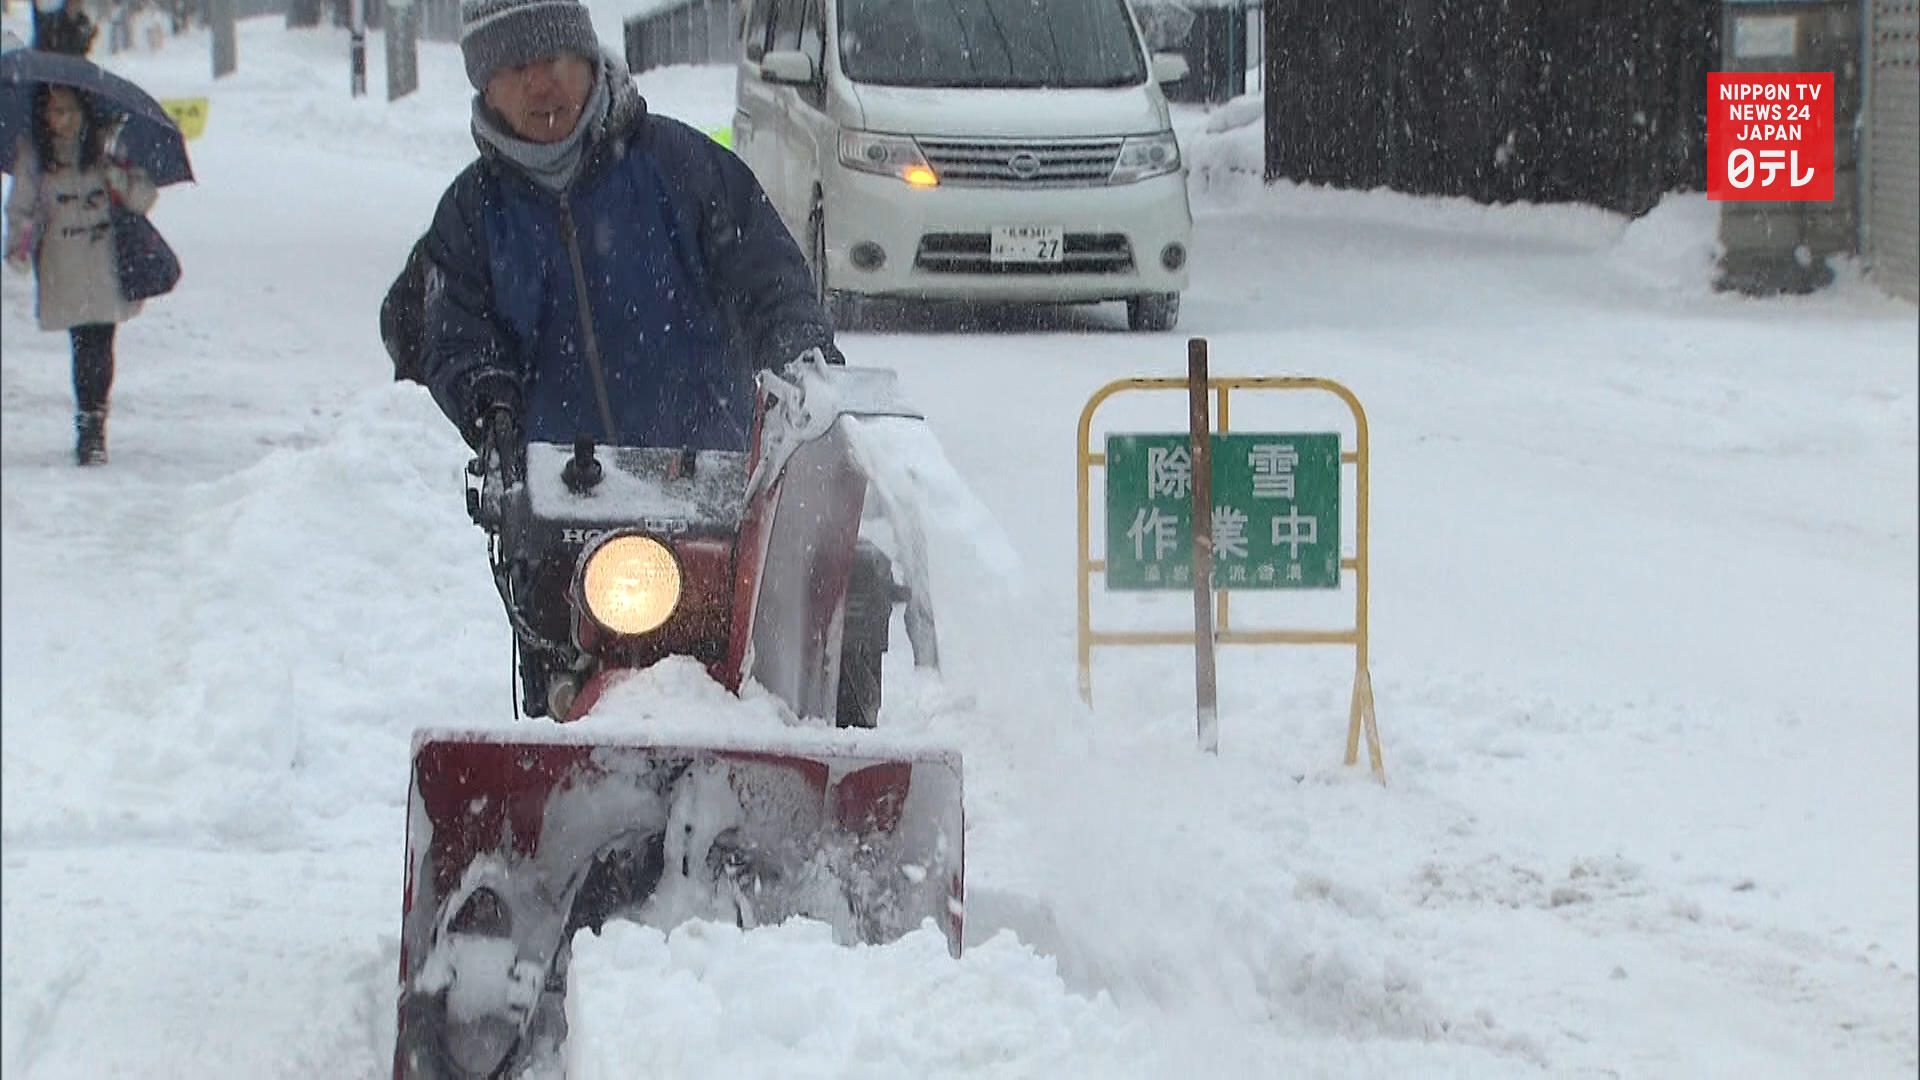 Hokkaido receives most snow this winter